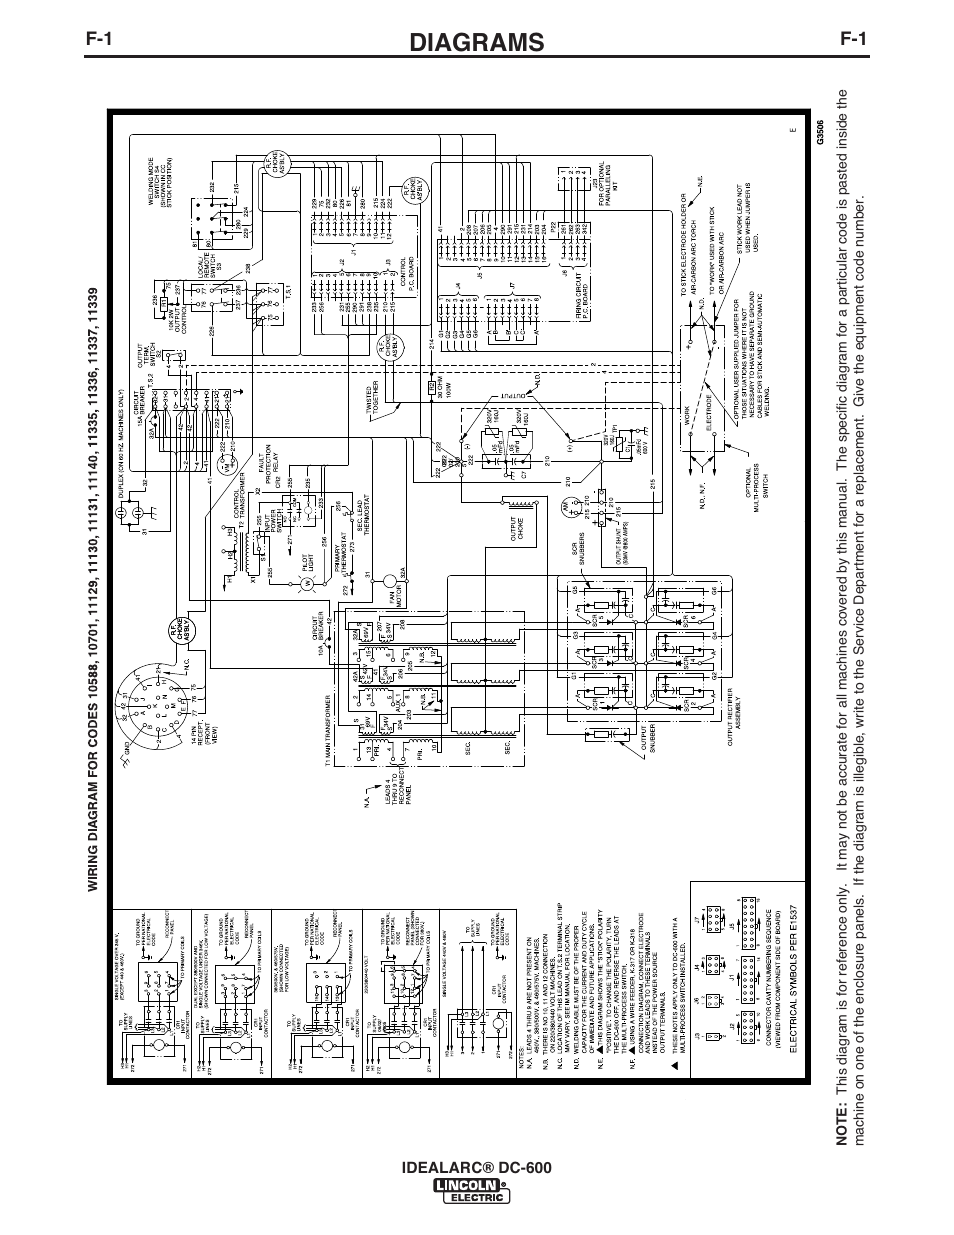 diagrams   lincoln electric im642 idealarc dc-600 user manual   page 42 / 57  manuals directory